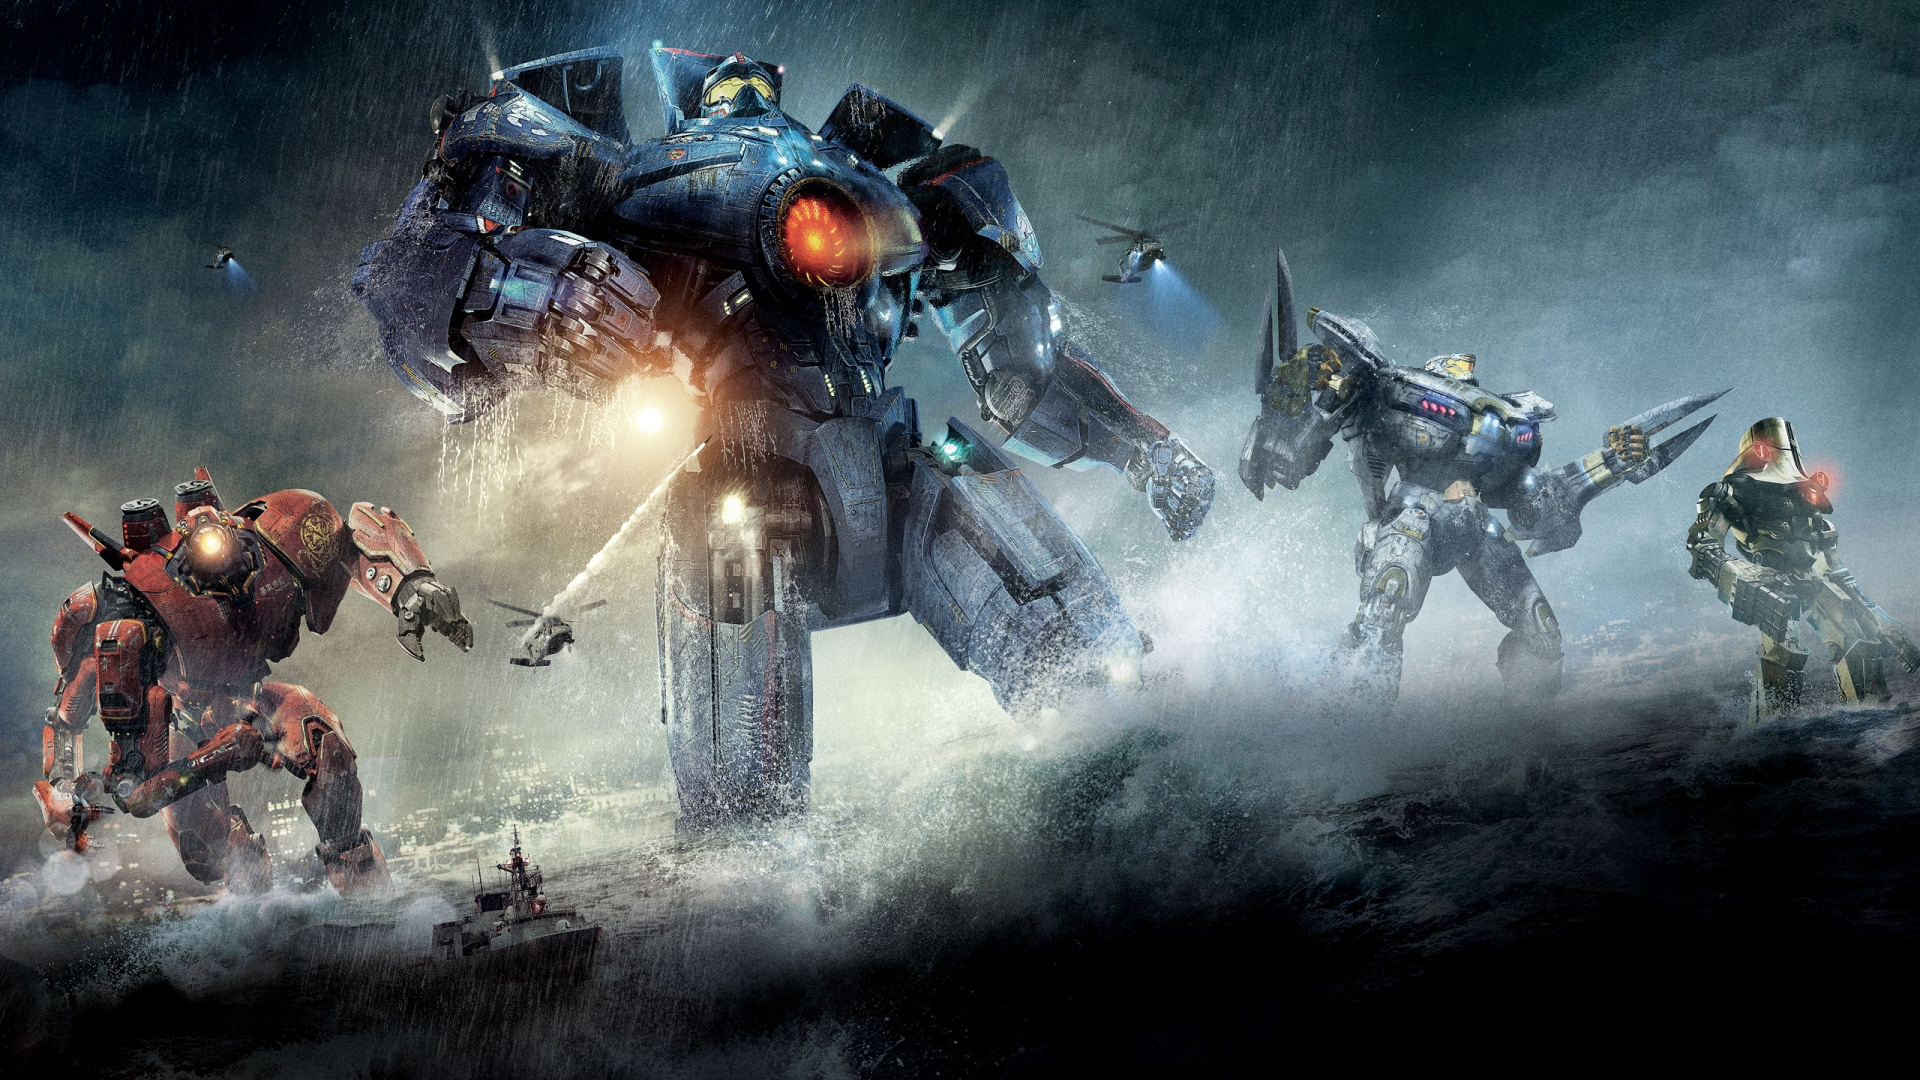 http://vignette1.wikia.nocookie.net/pacificrim/images/0/0d/Final_Four_Jaegers.jpg/revision/latest?cb=20130715095023